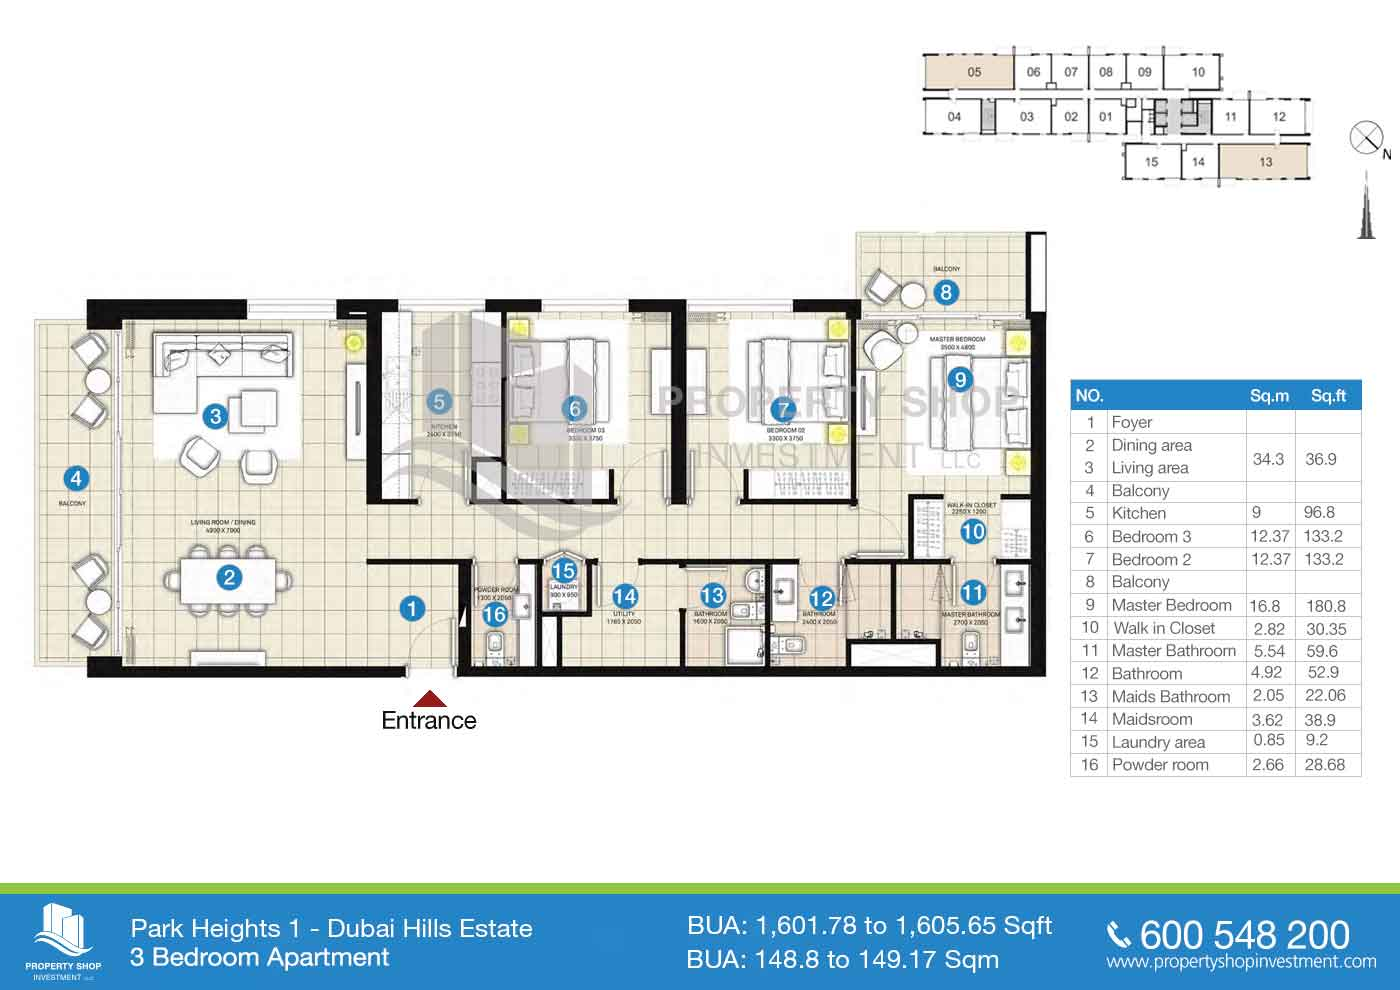 500sqm to sqft 100 500 sq m to sq ft 2 675m duplex loft in for 500 square meters house design